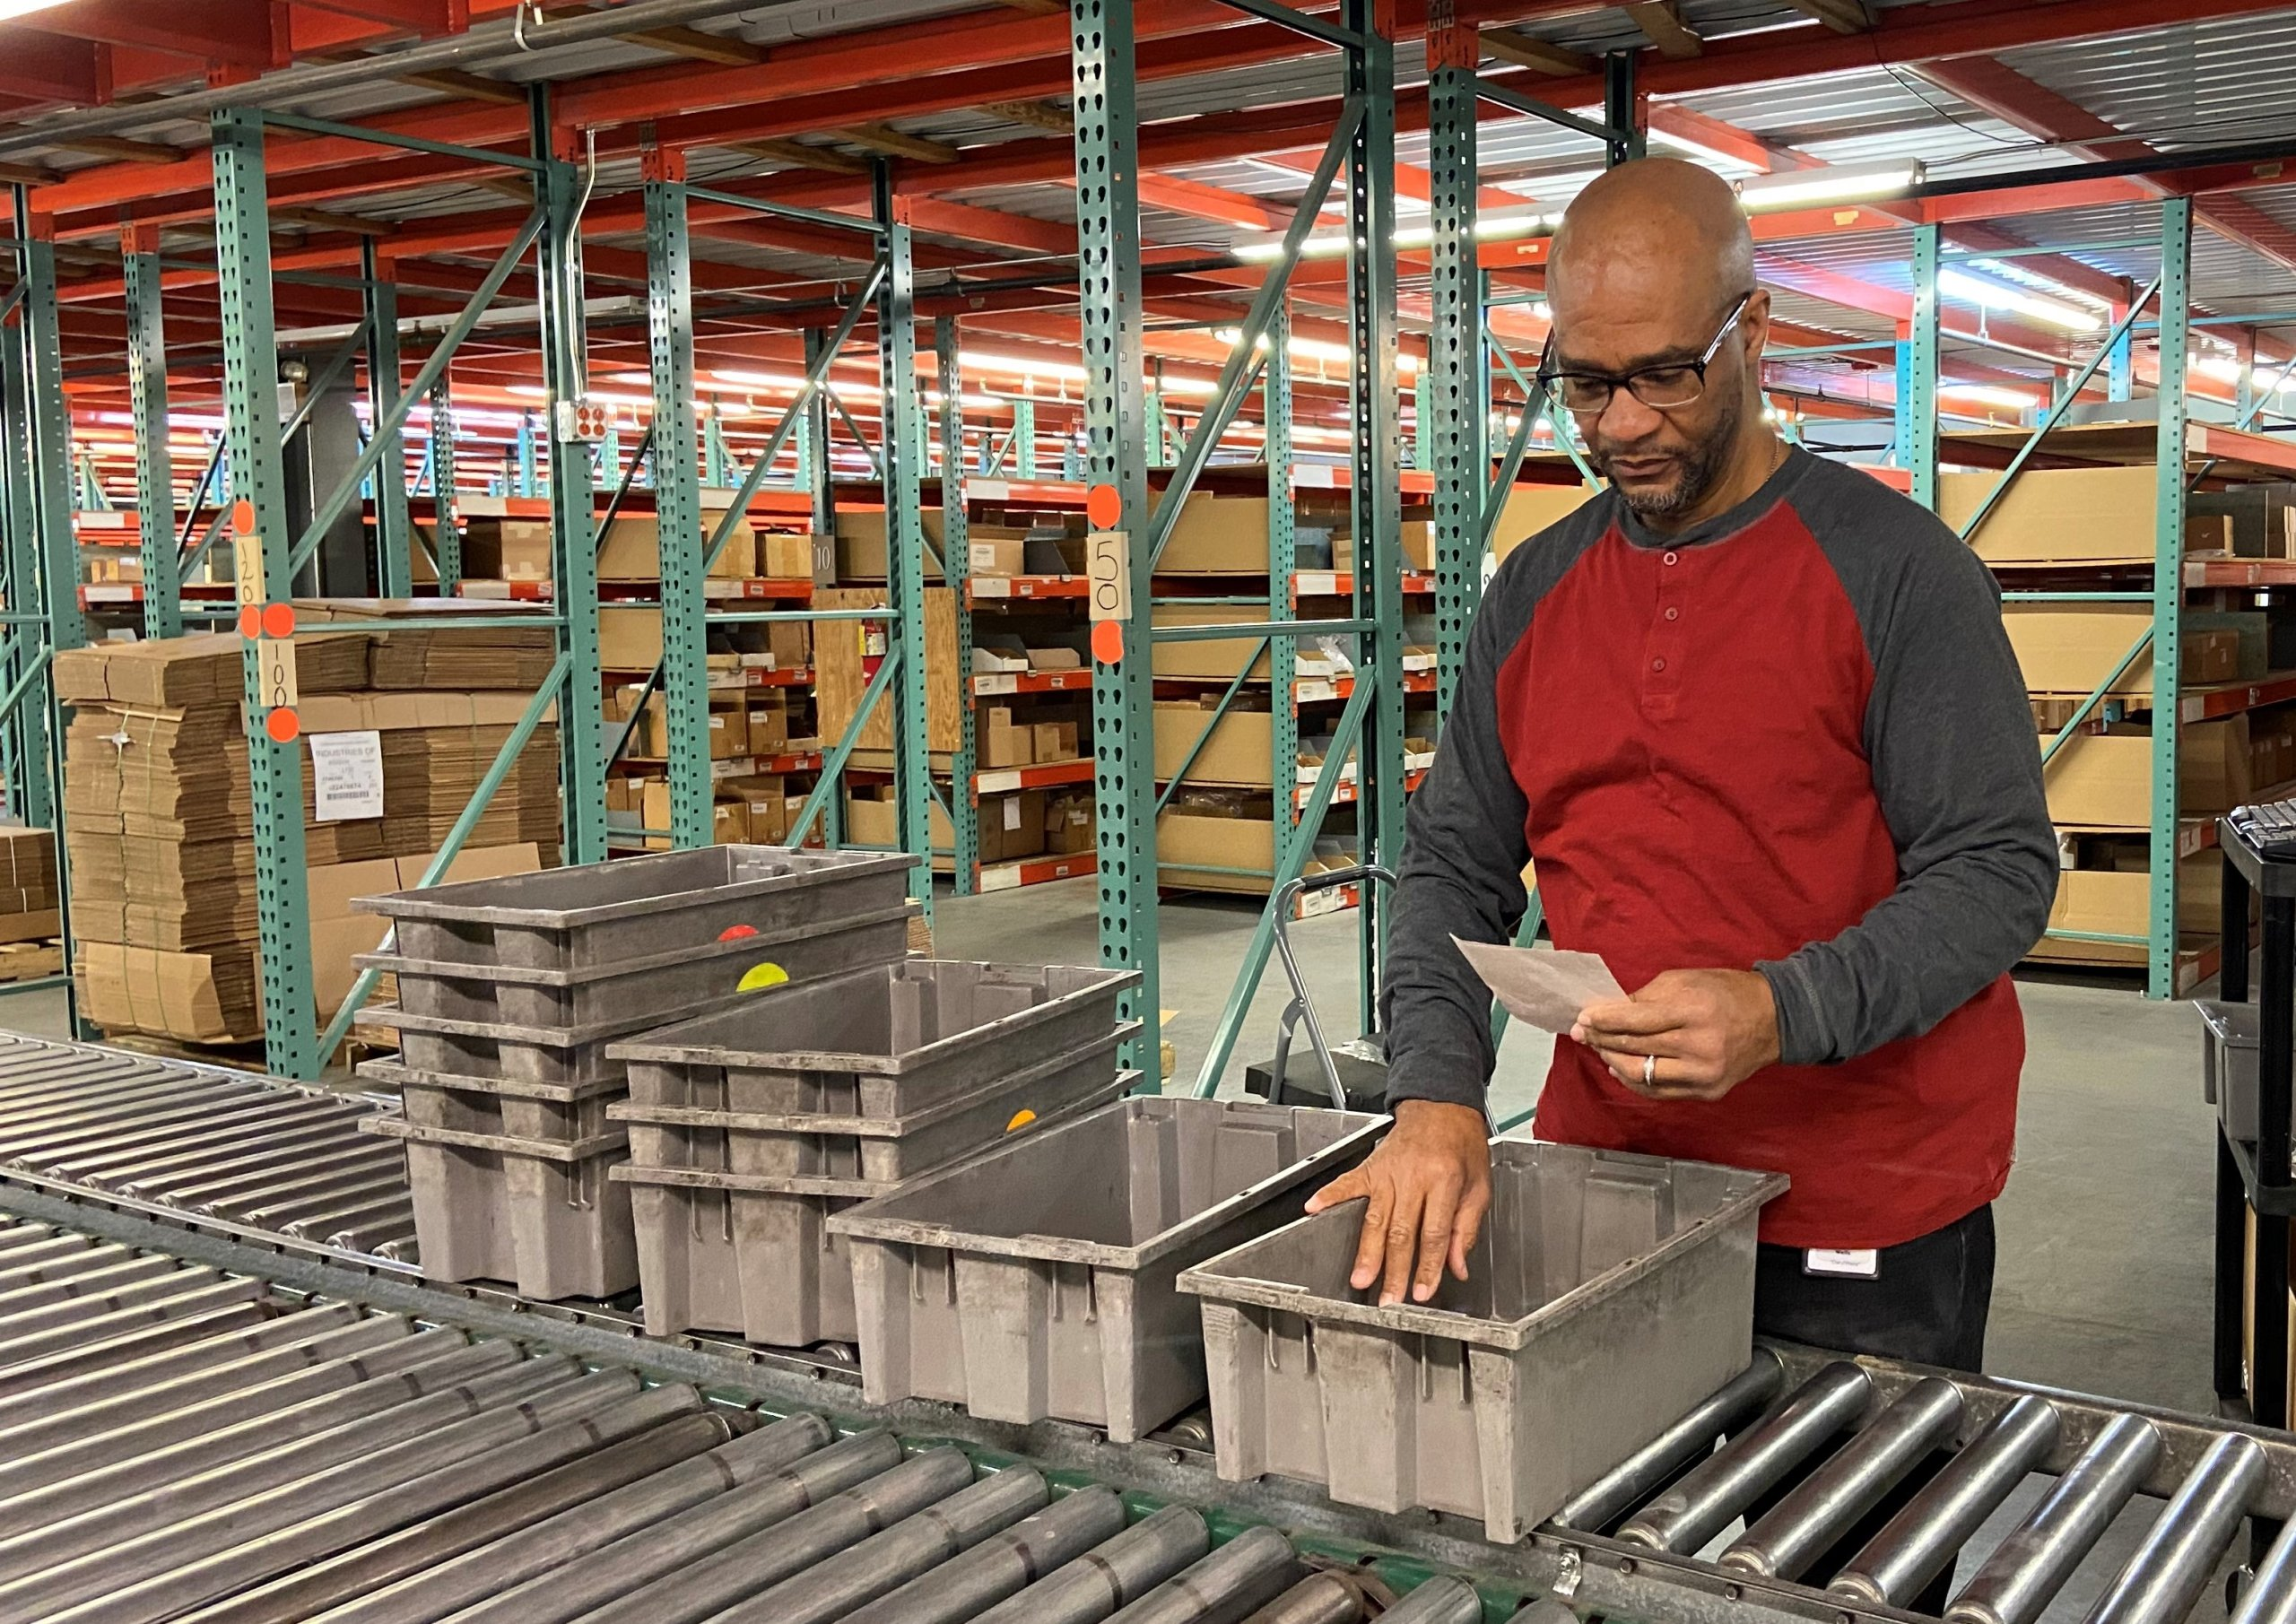 man who is visually impaired checking bins in warehouse